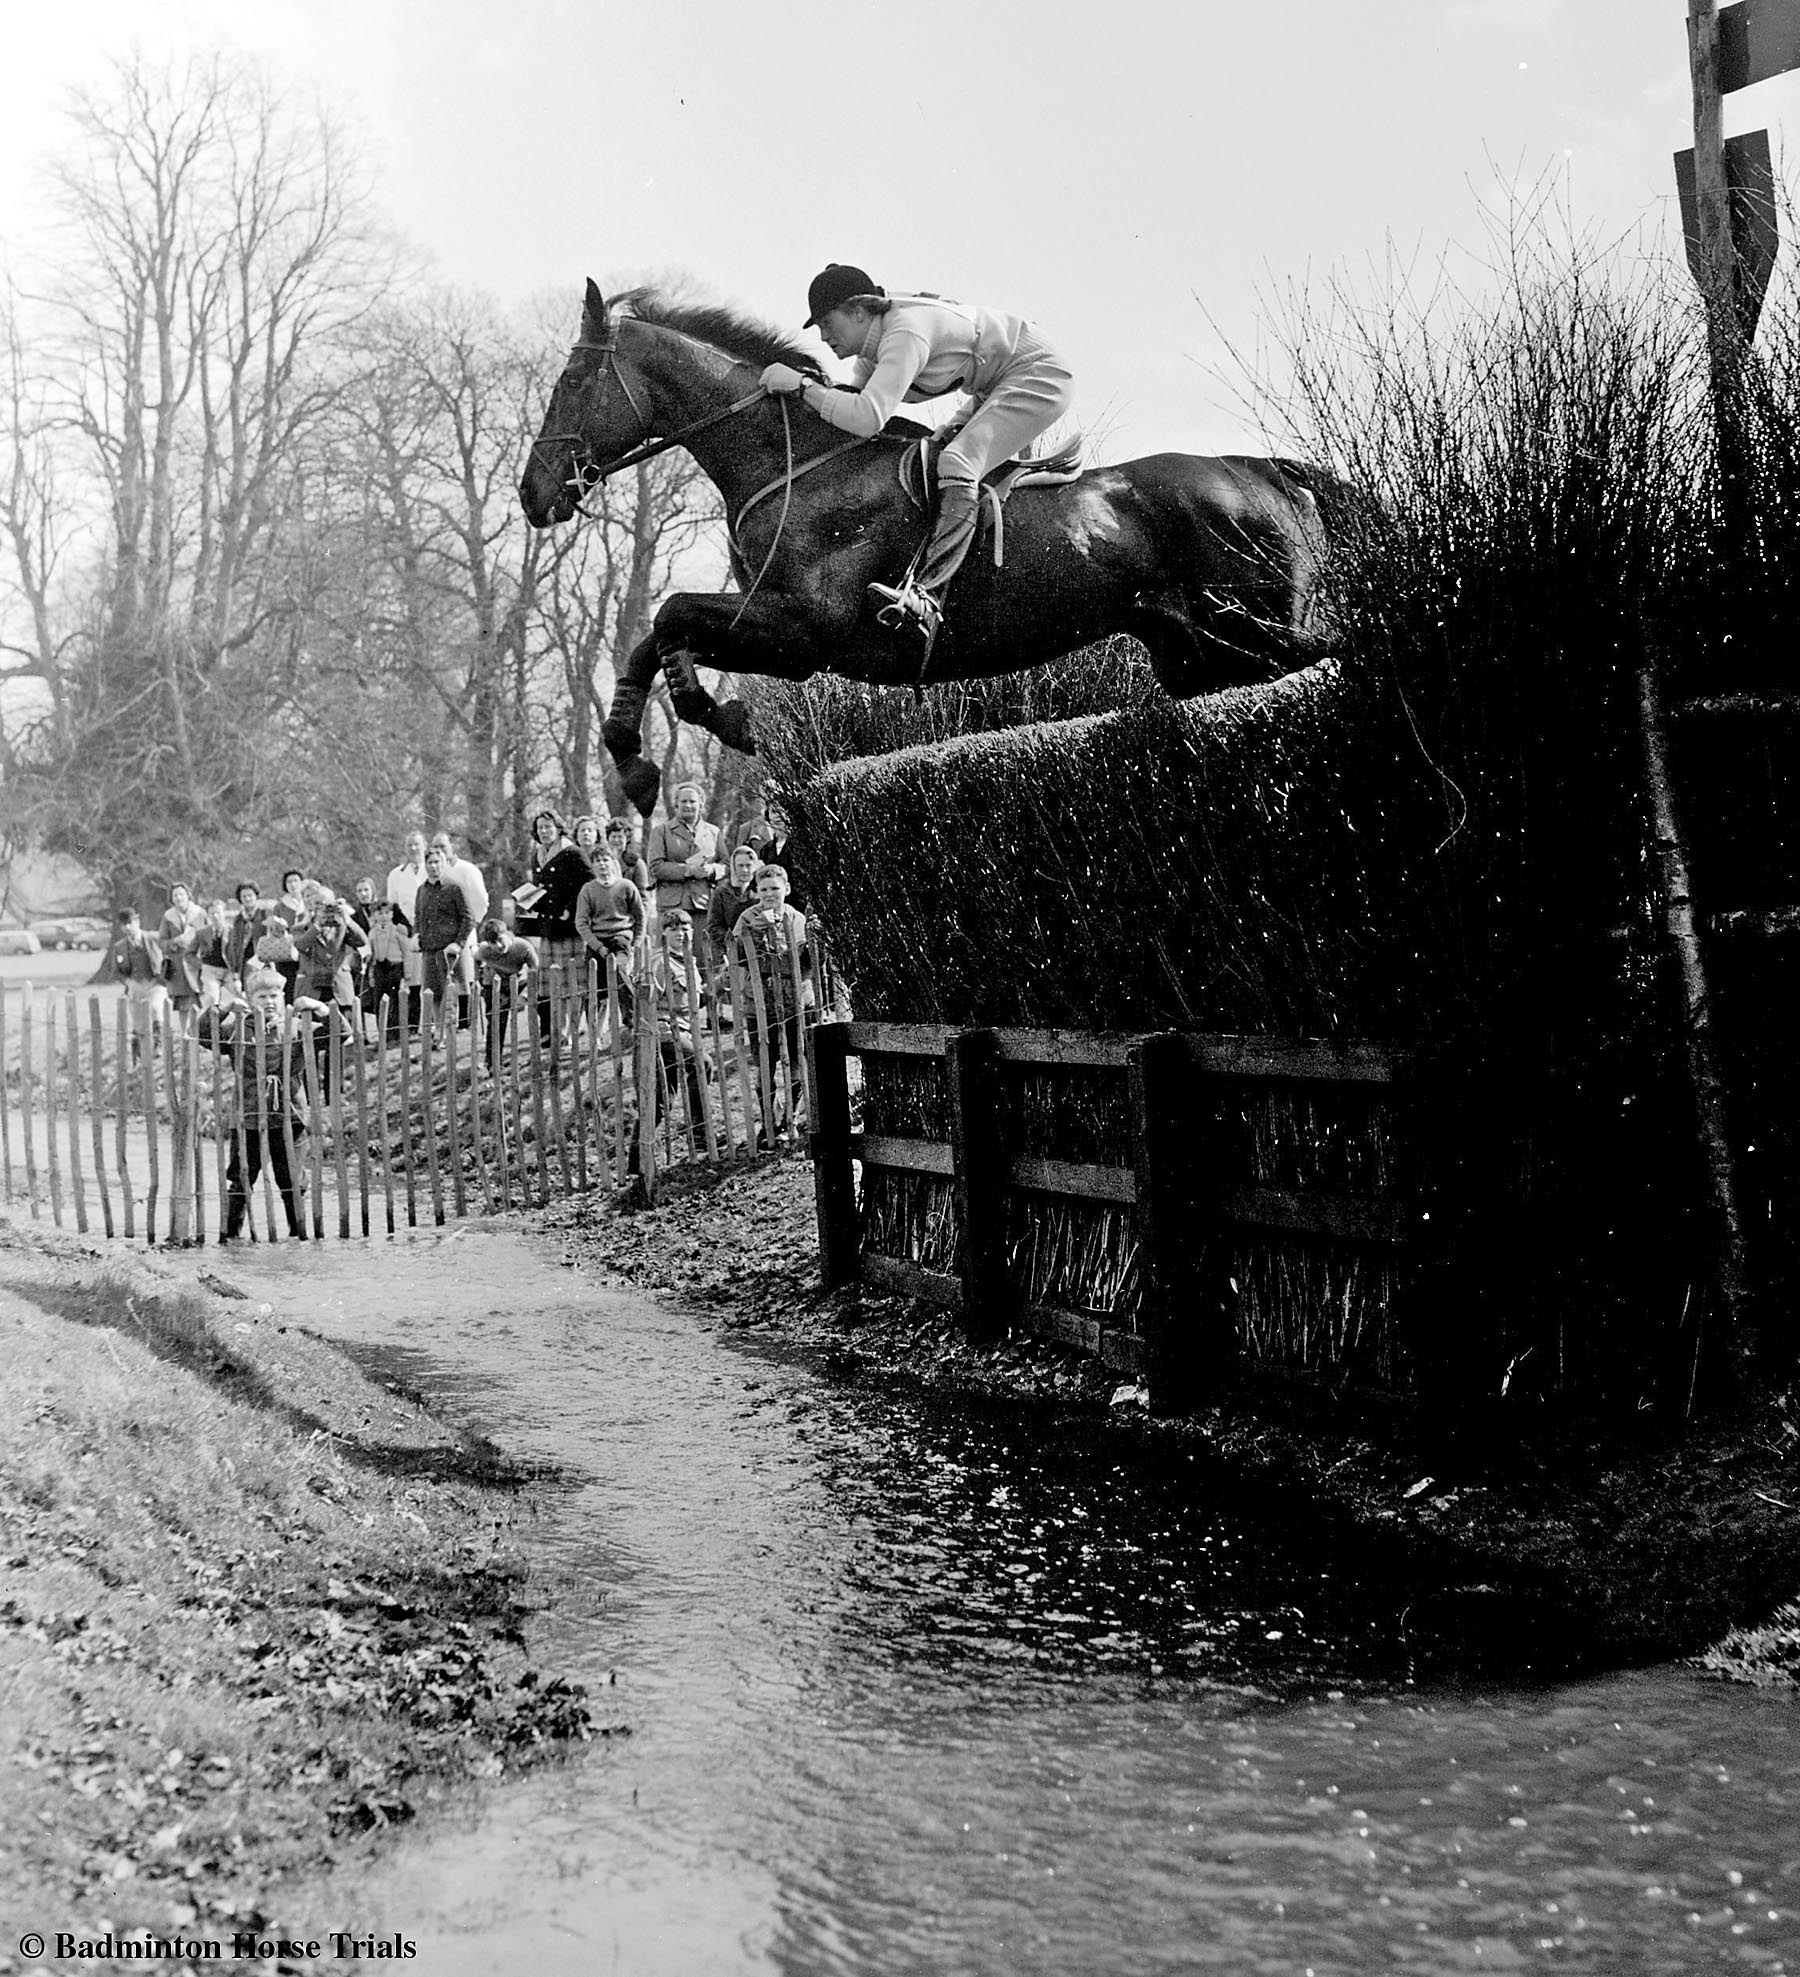 Badminton 1969 Commemorative Course- What was Badminton like back then?